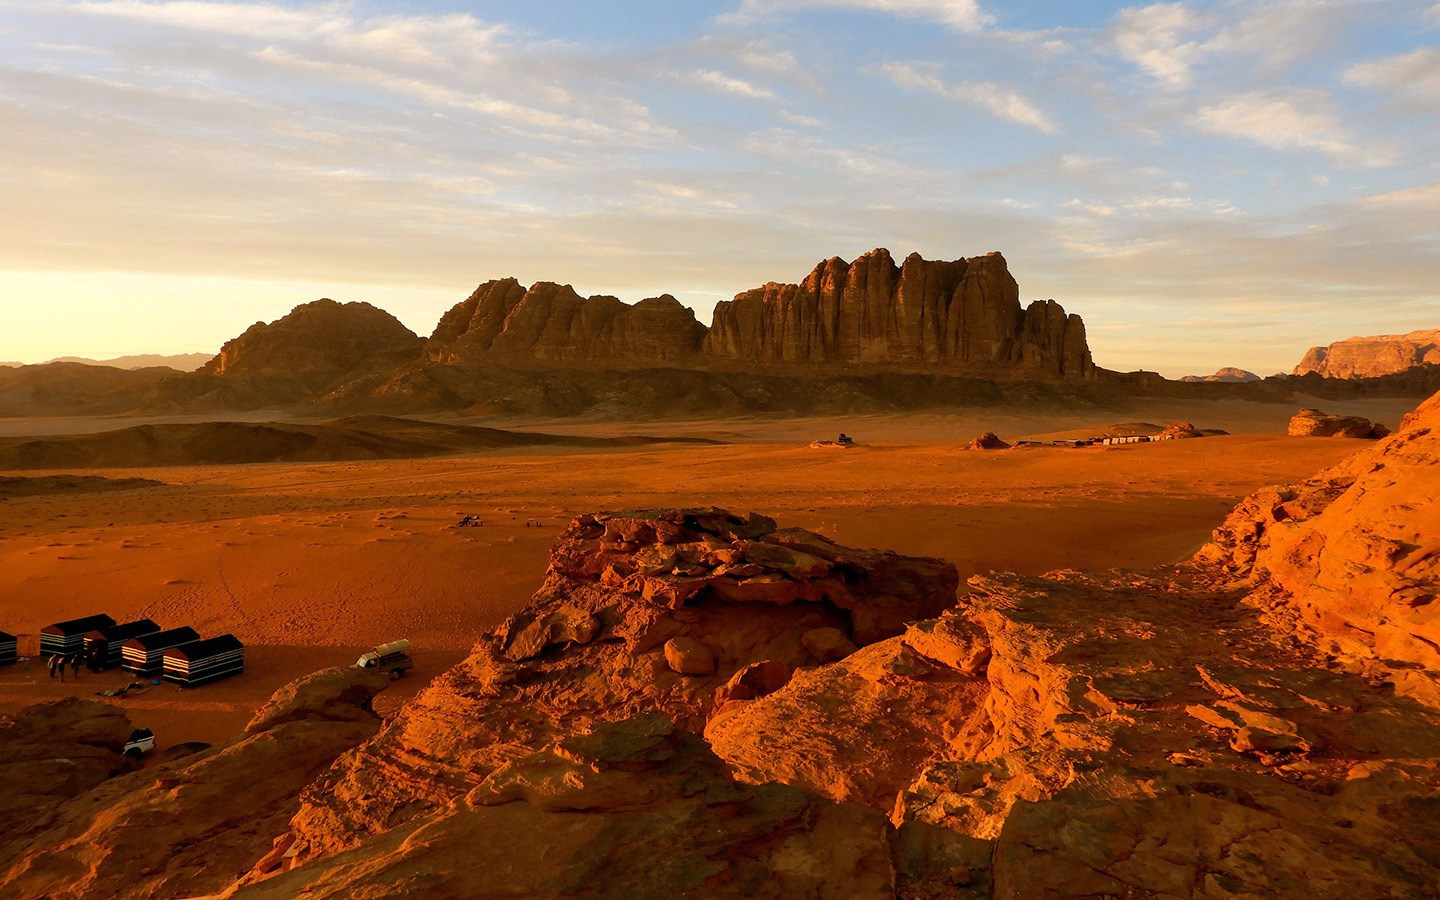 Sunset at Wadi Rum in Jordan